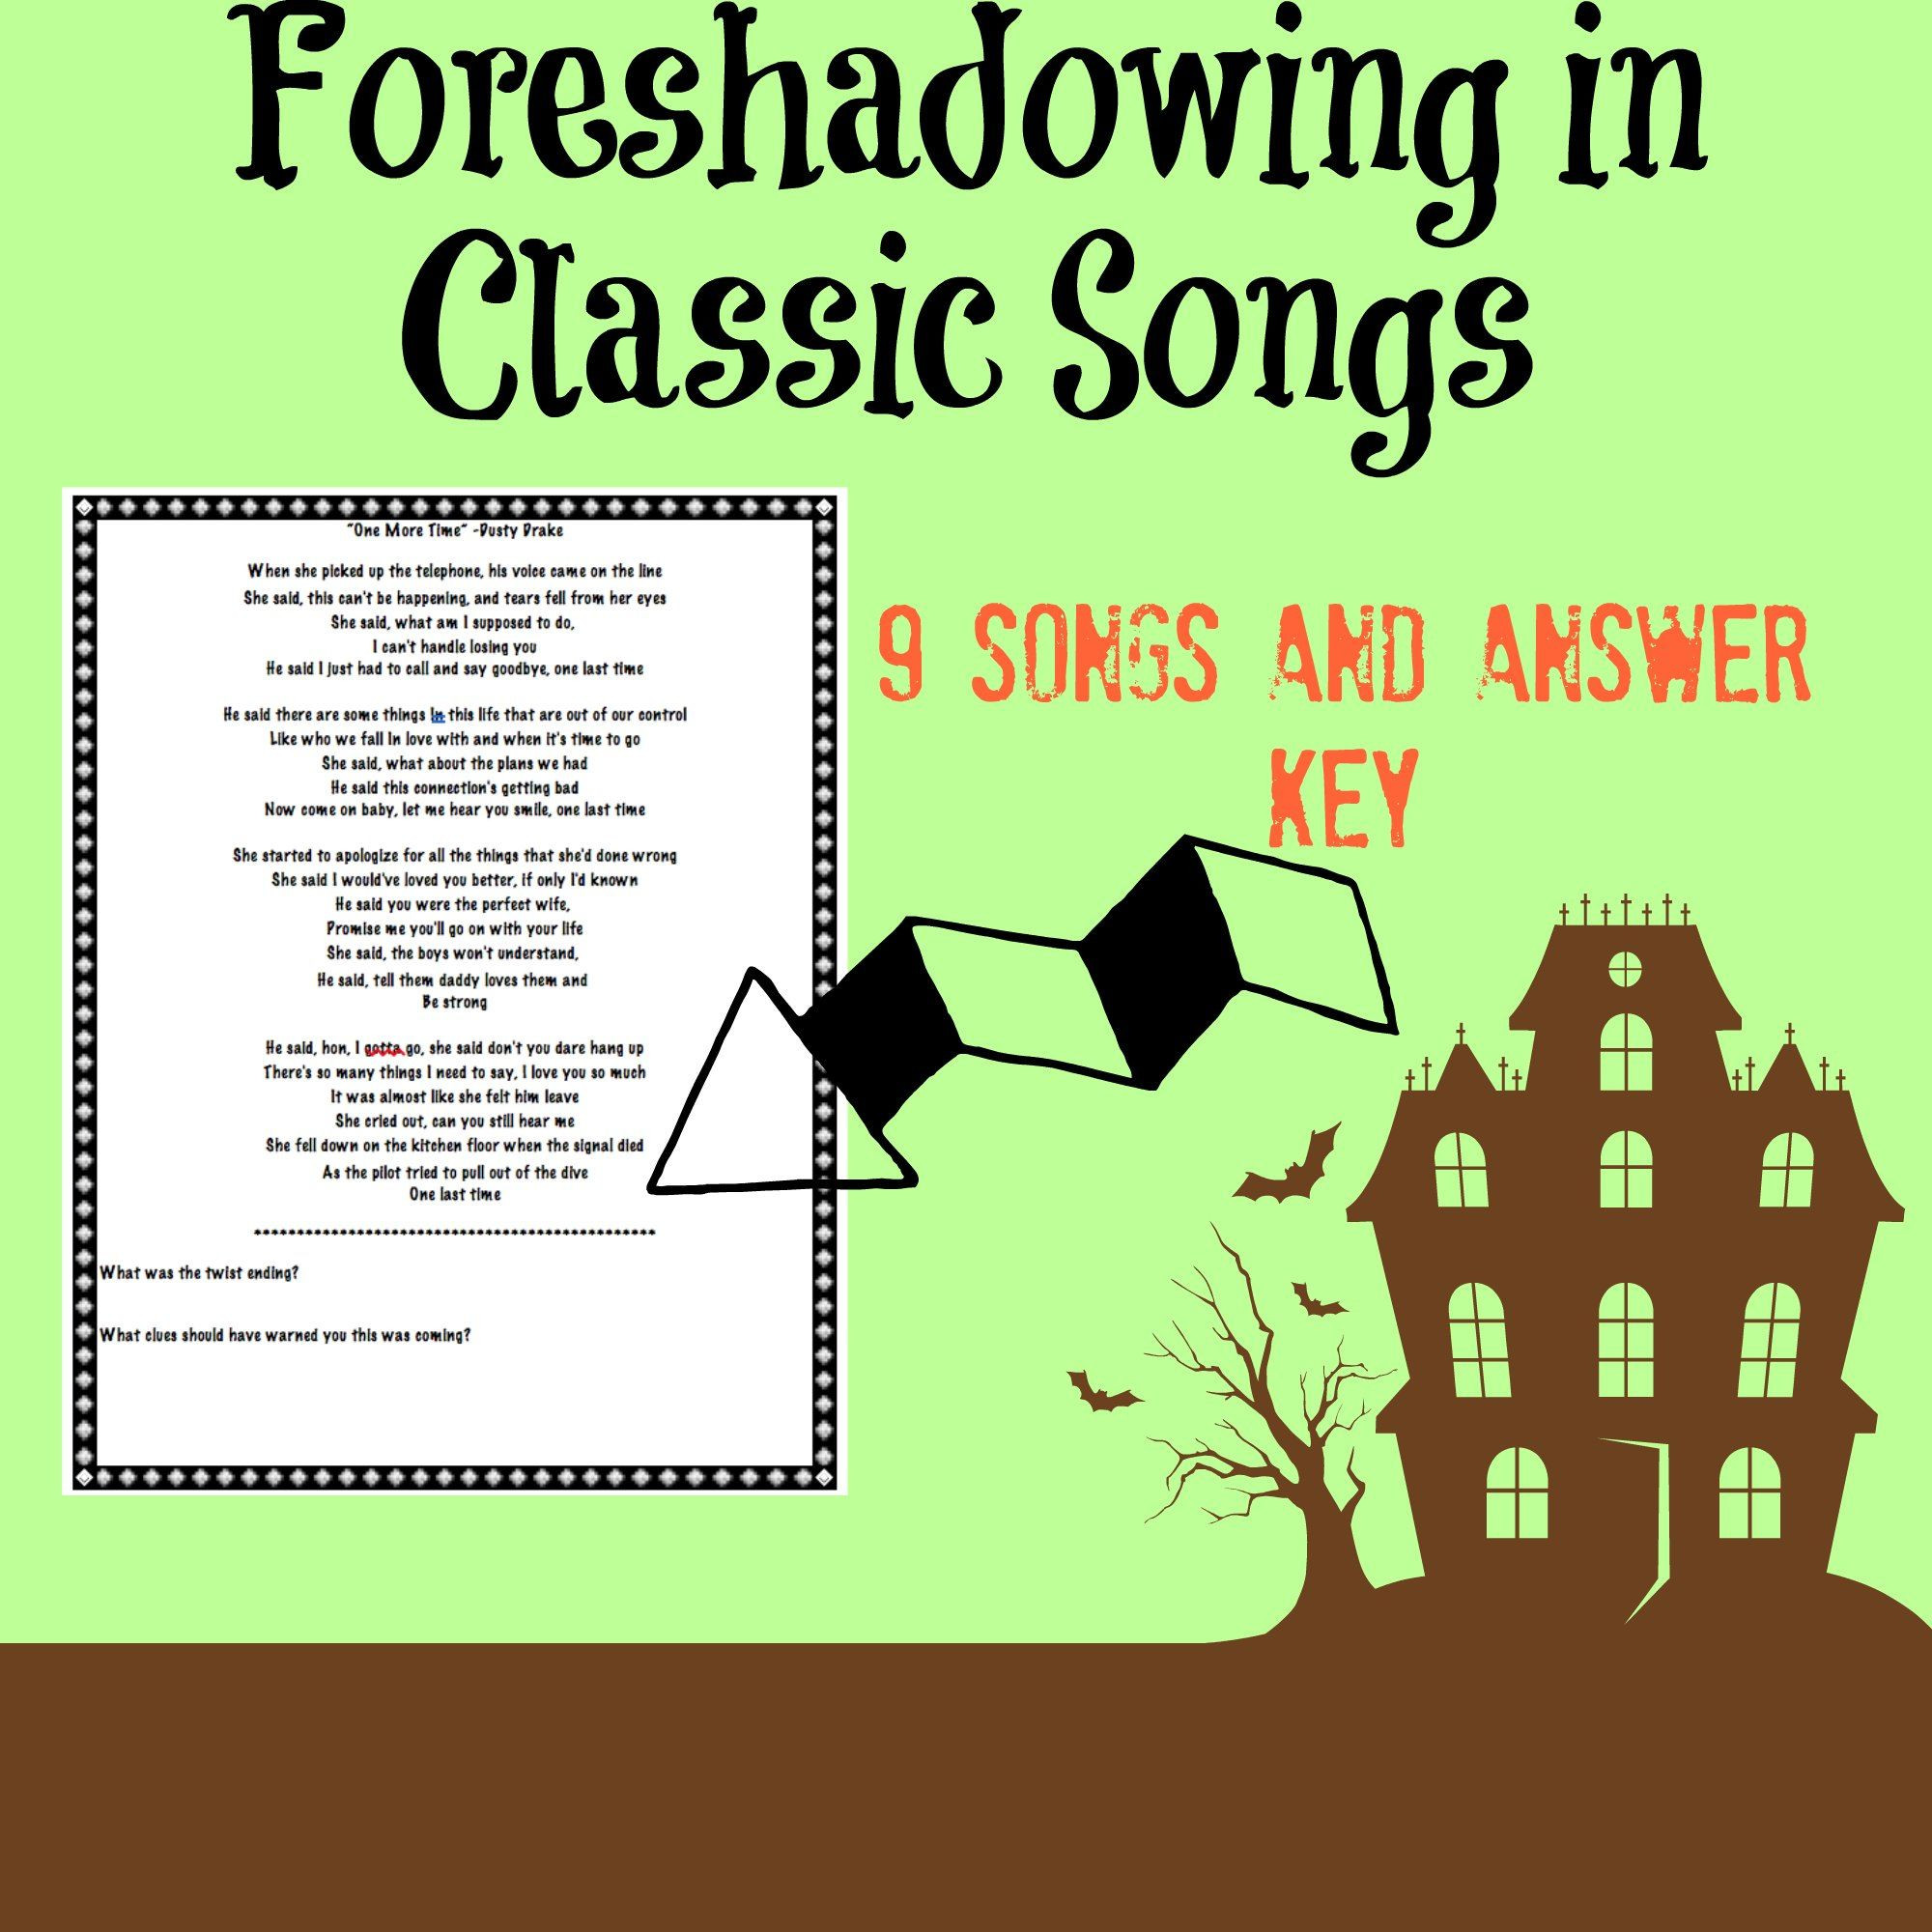 Foreshadowing Worksheet Middle School Identifying foreshadowing In Classic songs with Answer Key